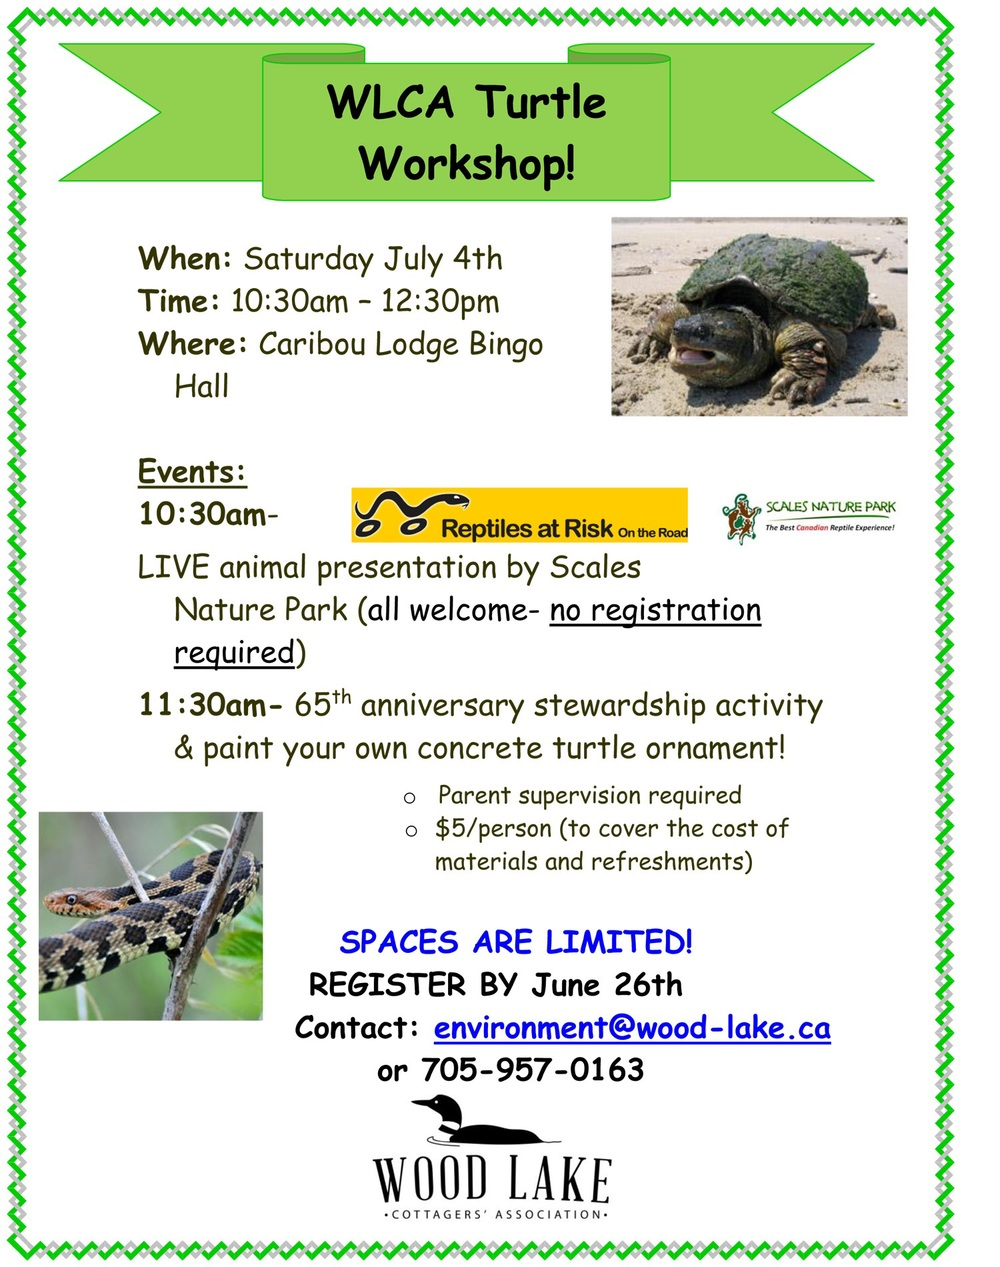 2015 Turtle Workshop.jpg